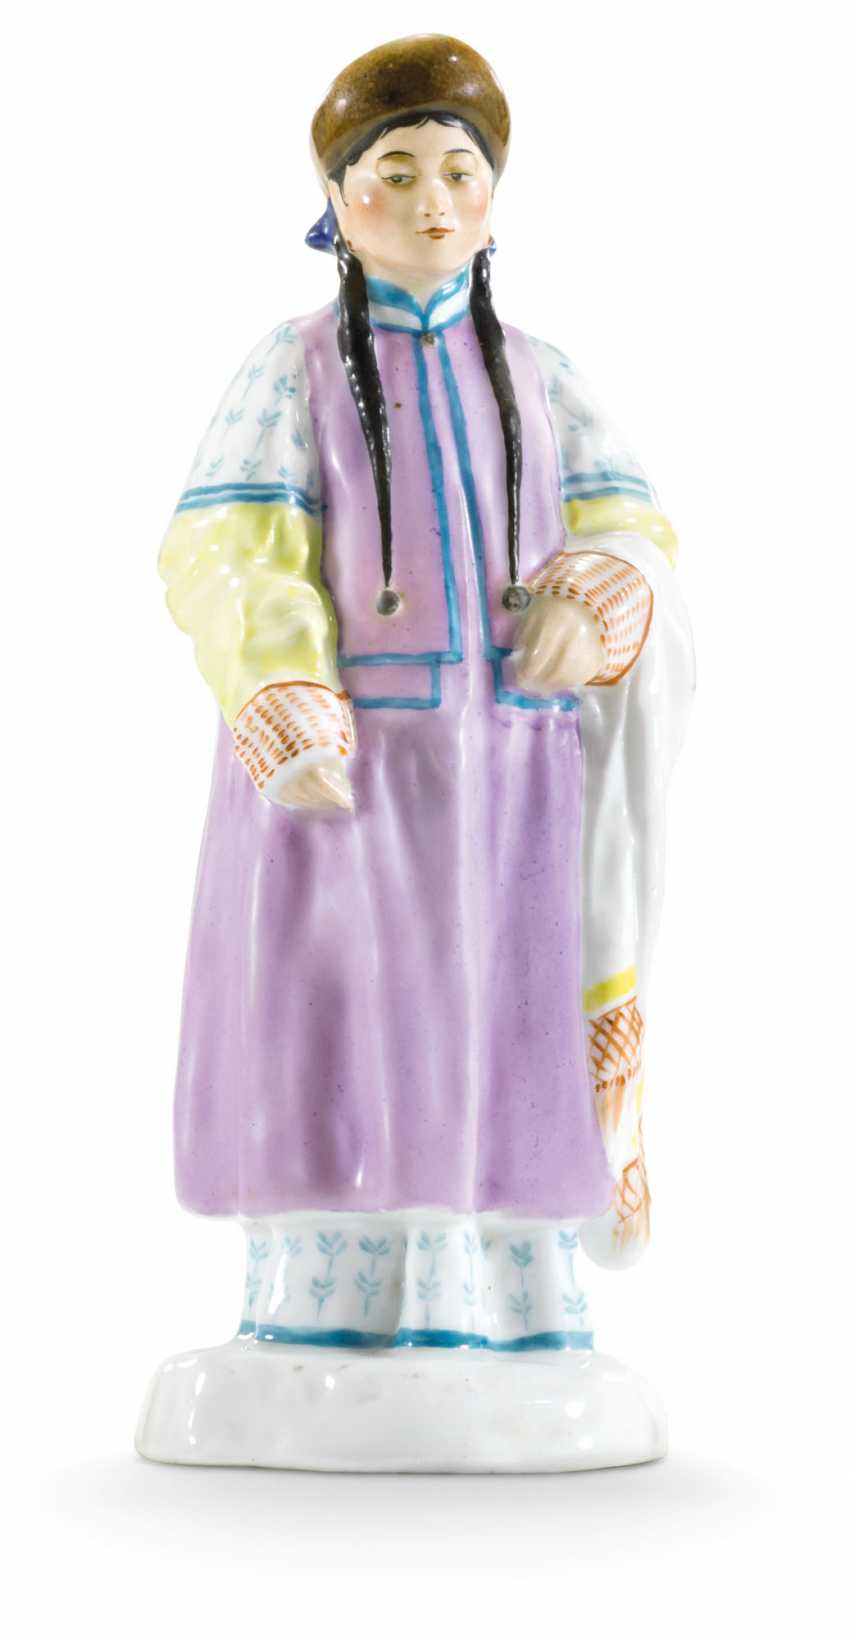 A PORCELAIN FIGURE OF A BURYAT WOMAN FROM THE 'PEOPLES OF RUSSIA' SERIES - photo 1